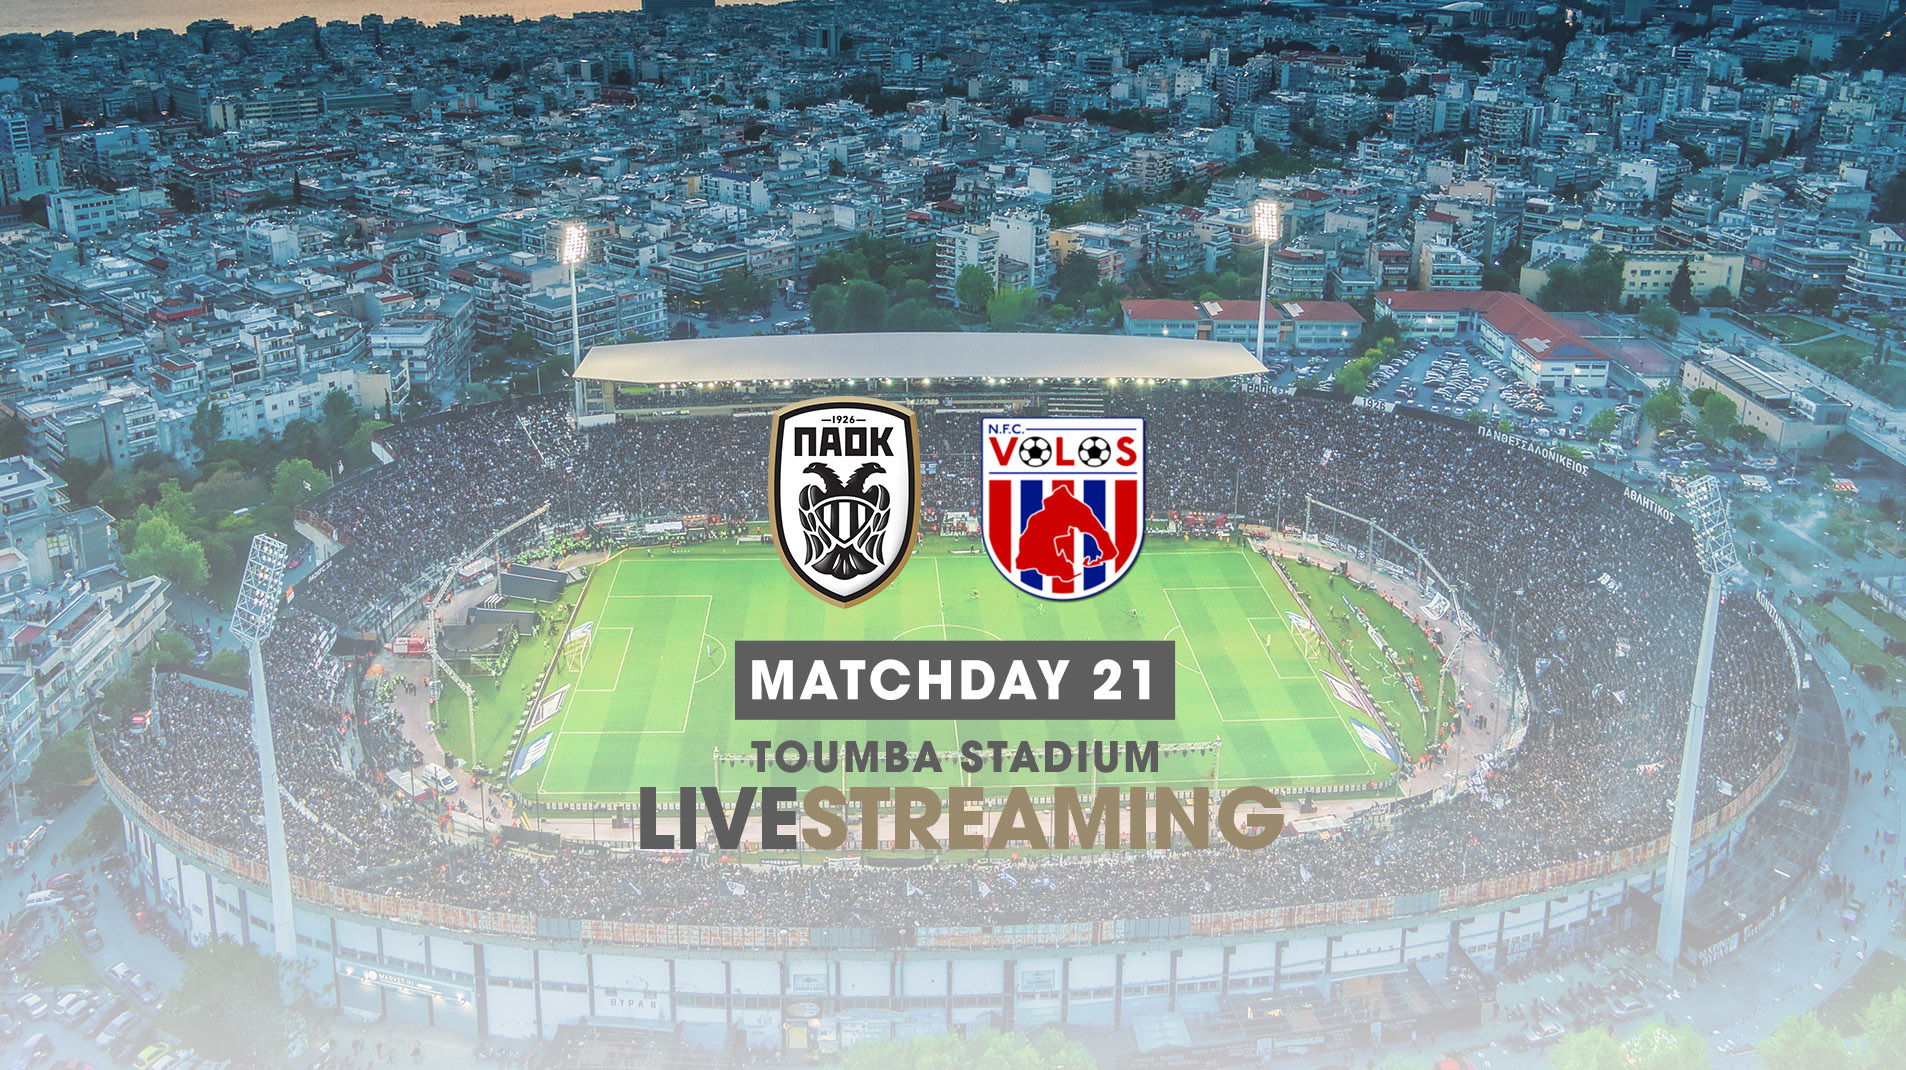 PAOK-NFC Volos [live]